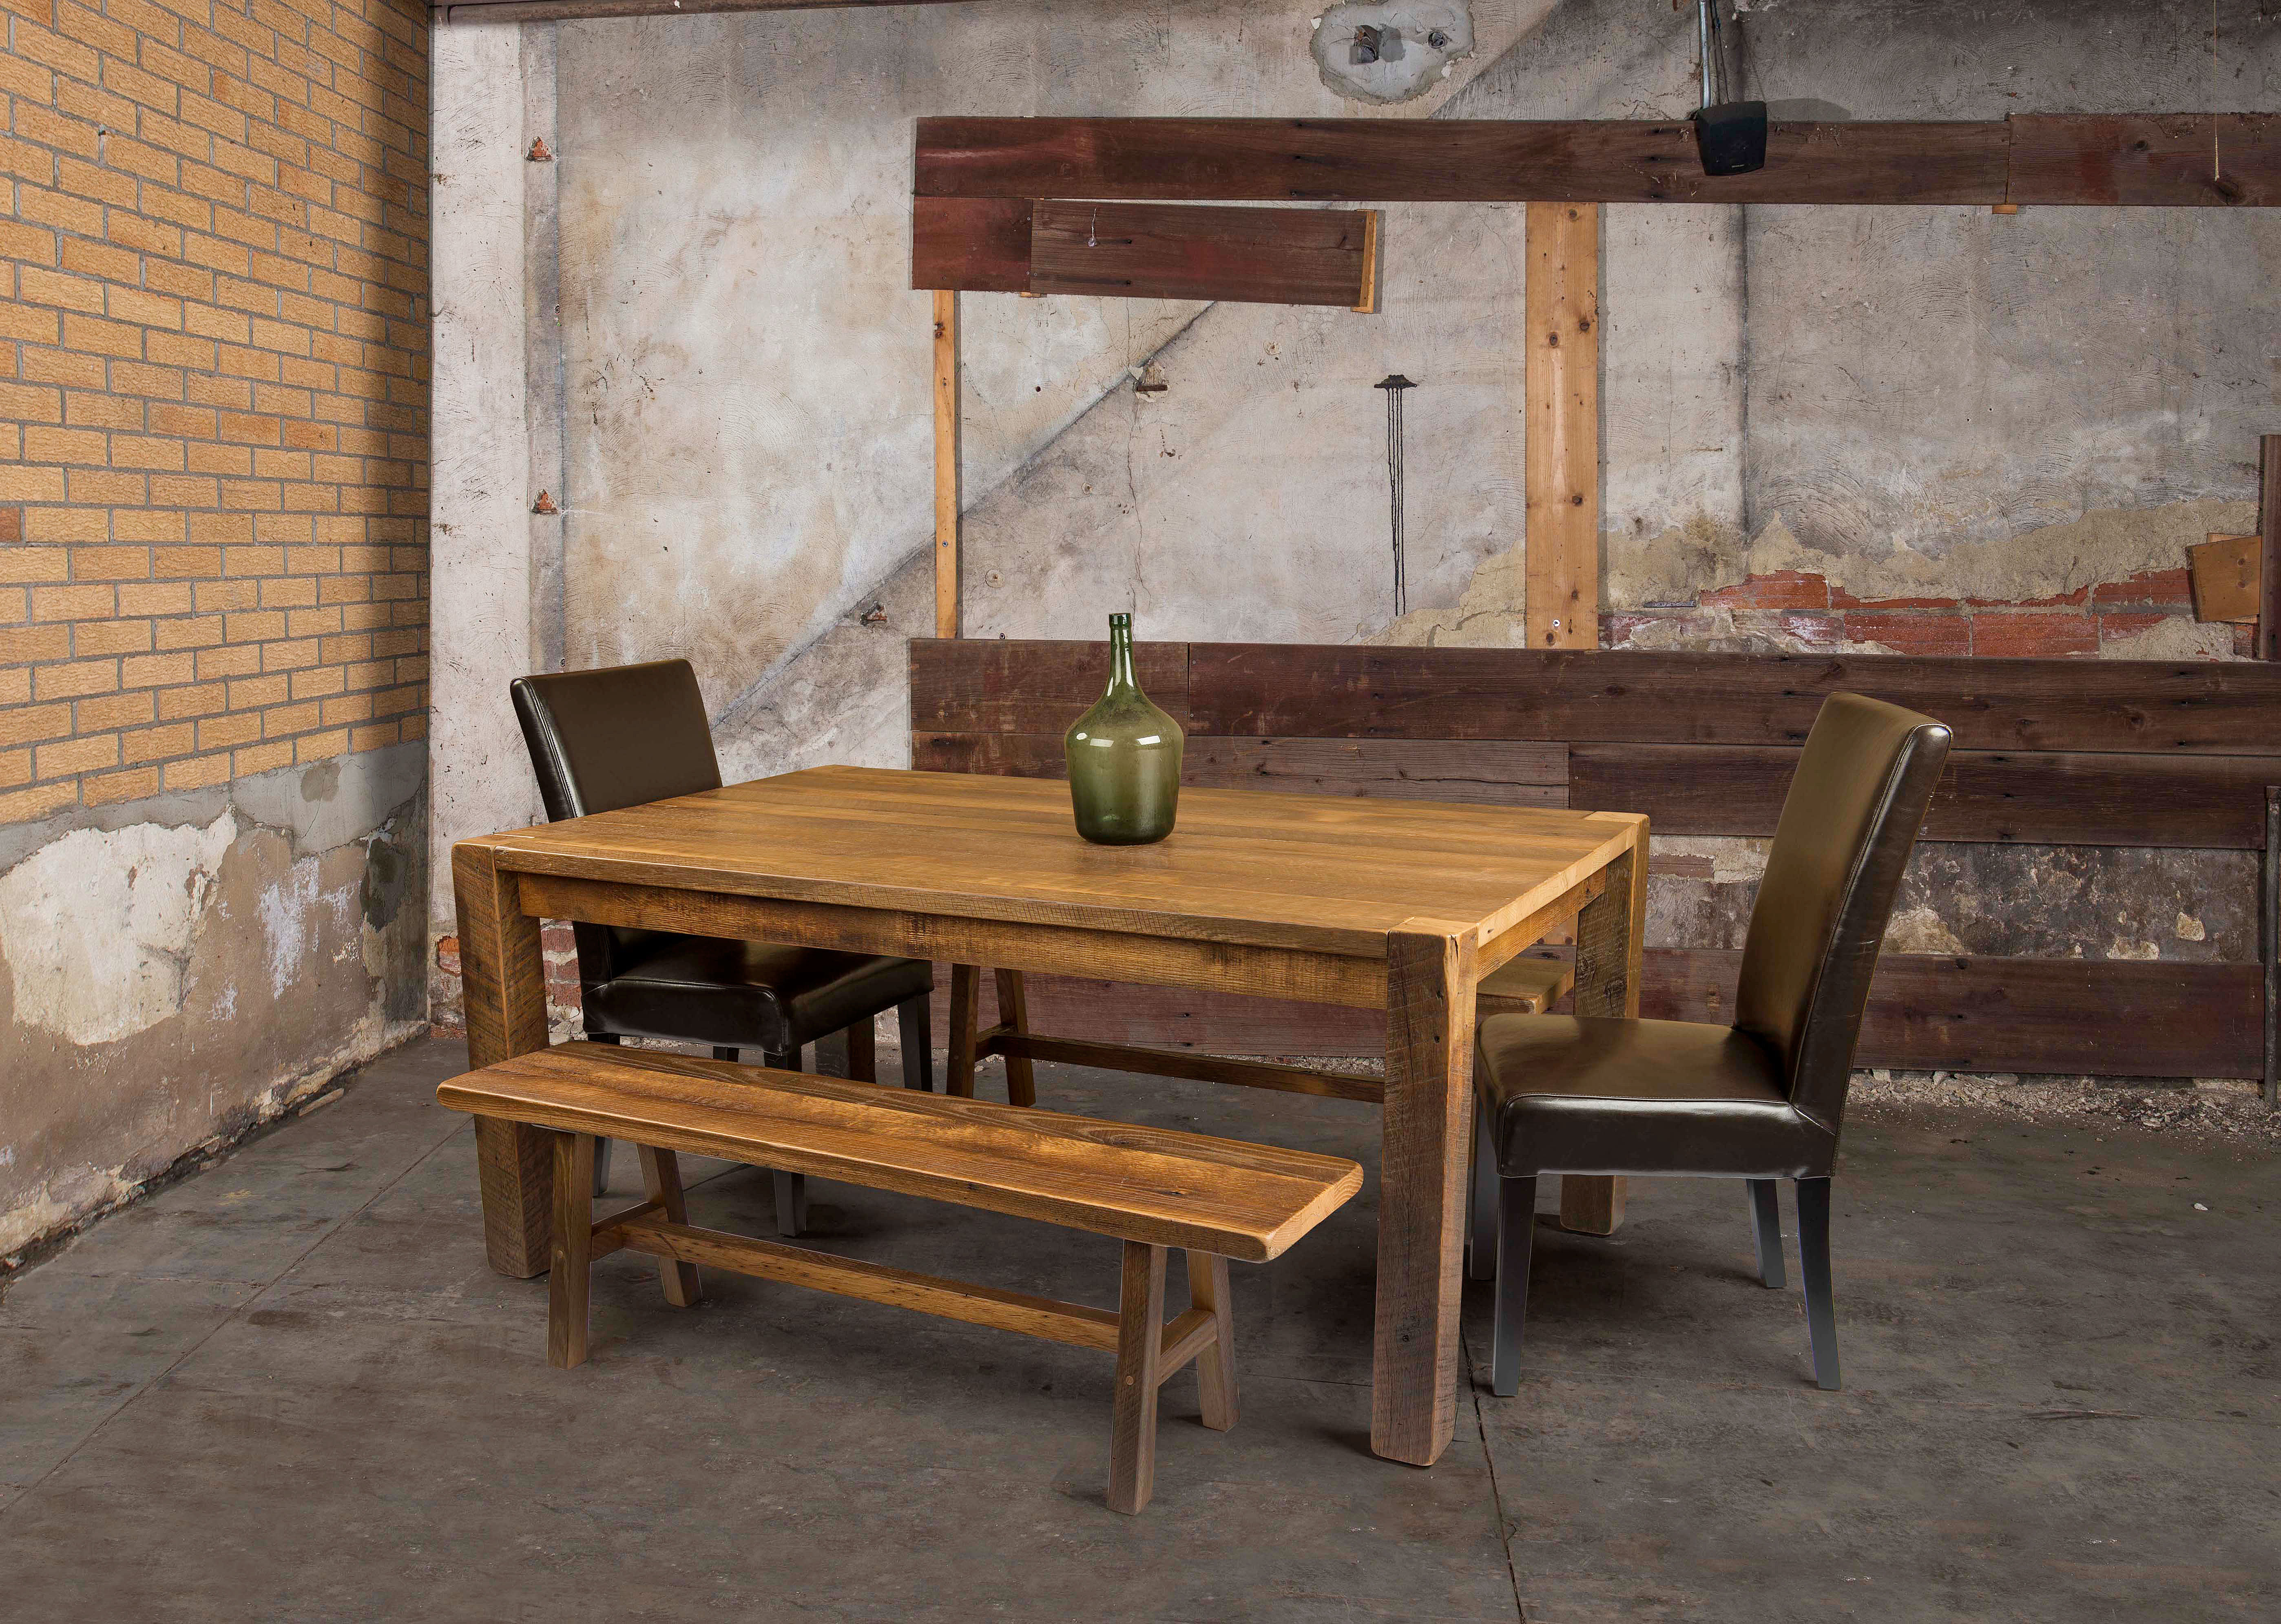 server rustic free today america crate product shipping furniture walnut removable vintage garden of harla with home overstock